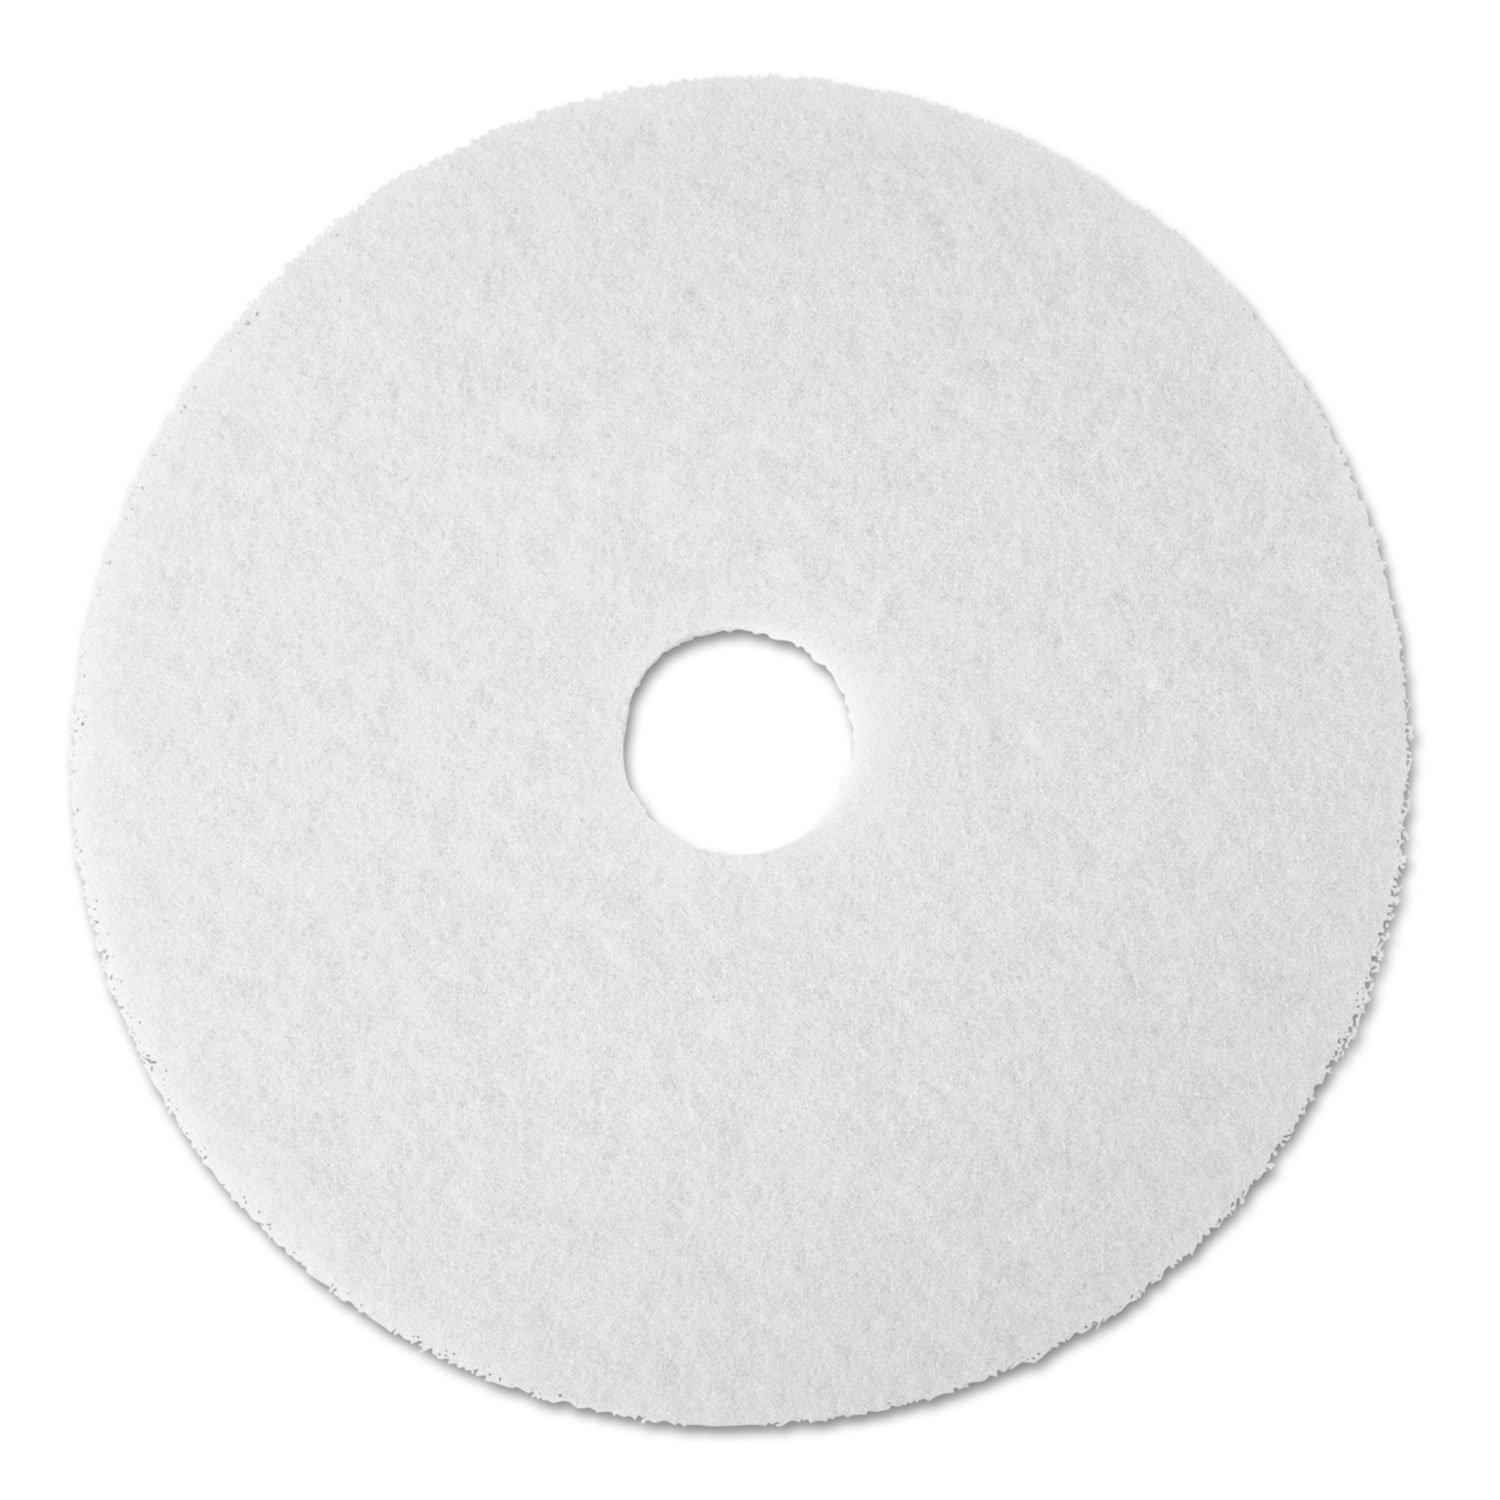 3M Commercial Ofc Sup Div 08476 Super Polish Pad,Removes Scuff/Black Heel,12 in.,5/CT,White 3M 08476 MMM08476-UN0912NU